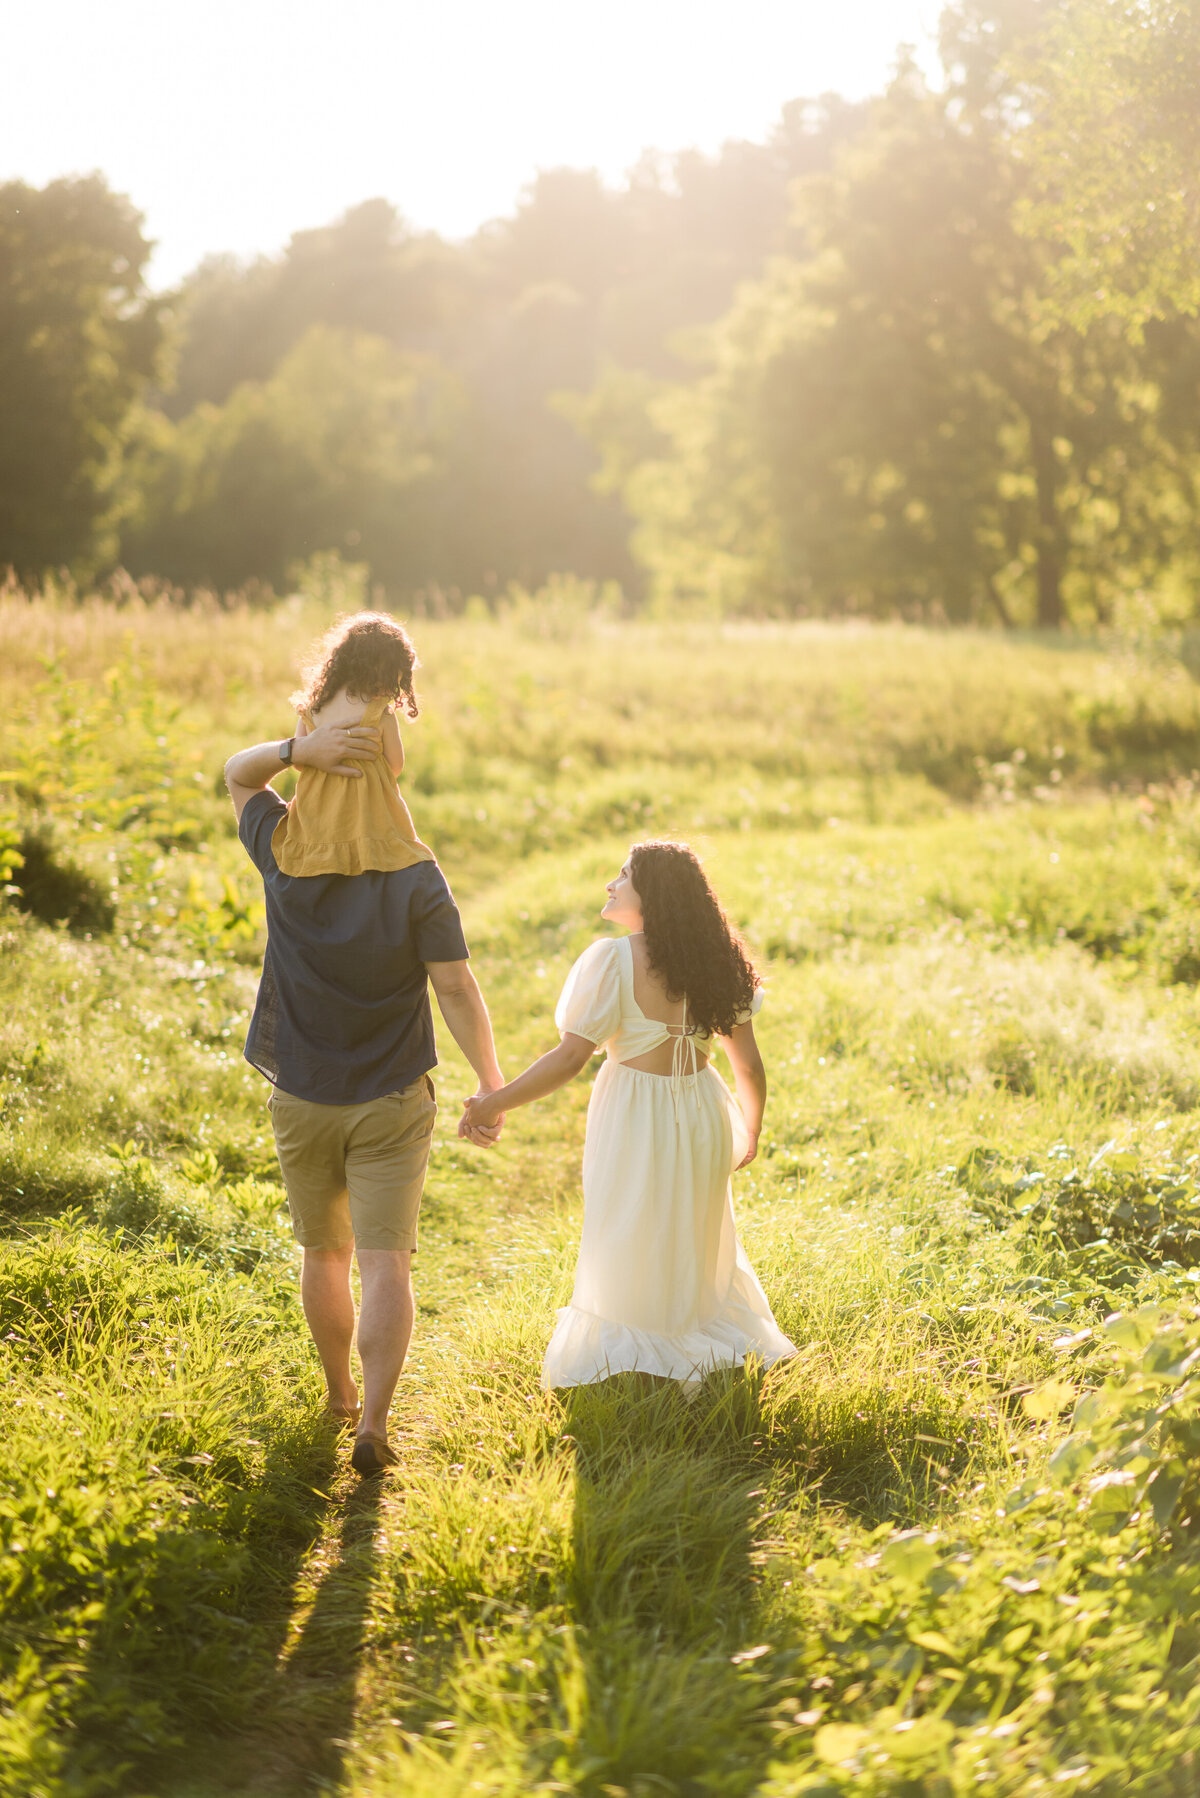 Boston-family-photographer-bella-wang-photography-Lifestyle-session-outdoor-wildflower-28